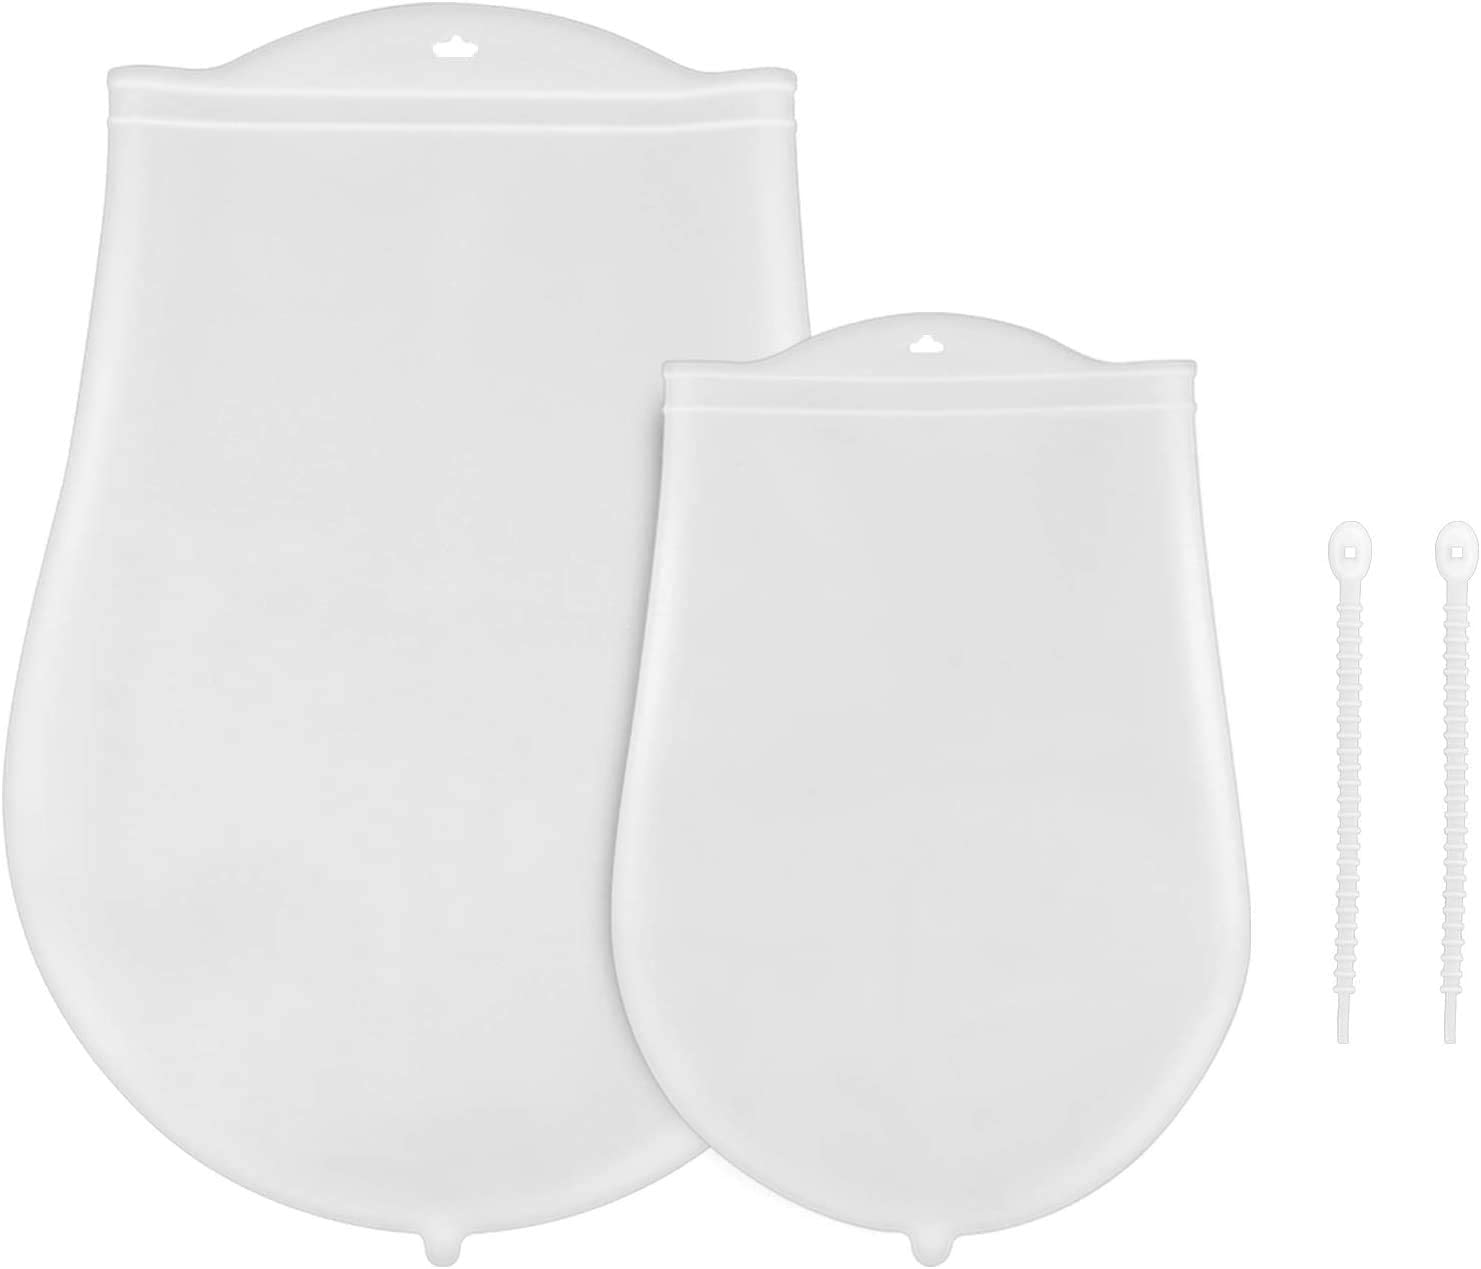 2 Packs Silicone Kneading Bag, Multifunctional Dough Mixer For Bread, Pastry And Pizza & Tortilla, Food Preservation Bag(large&small)